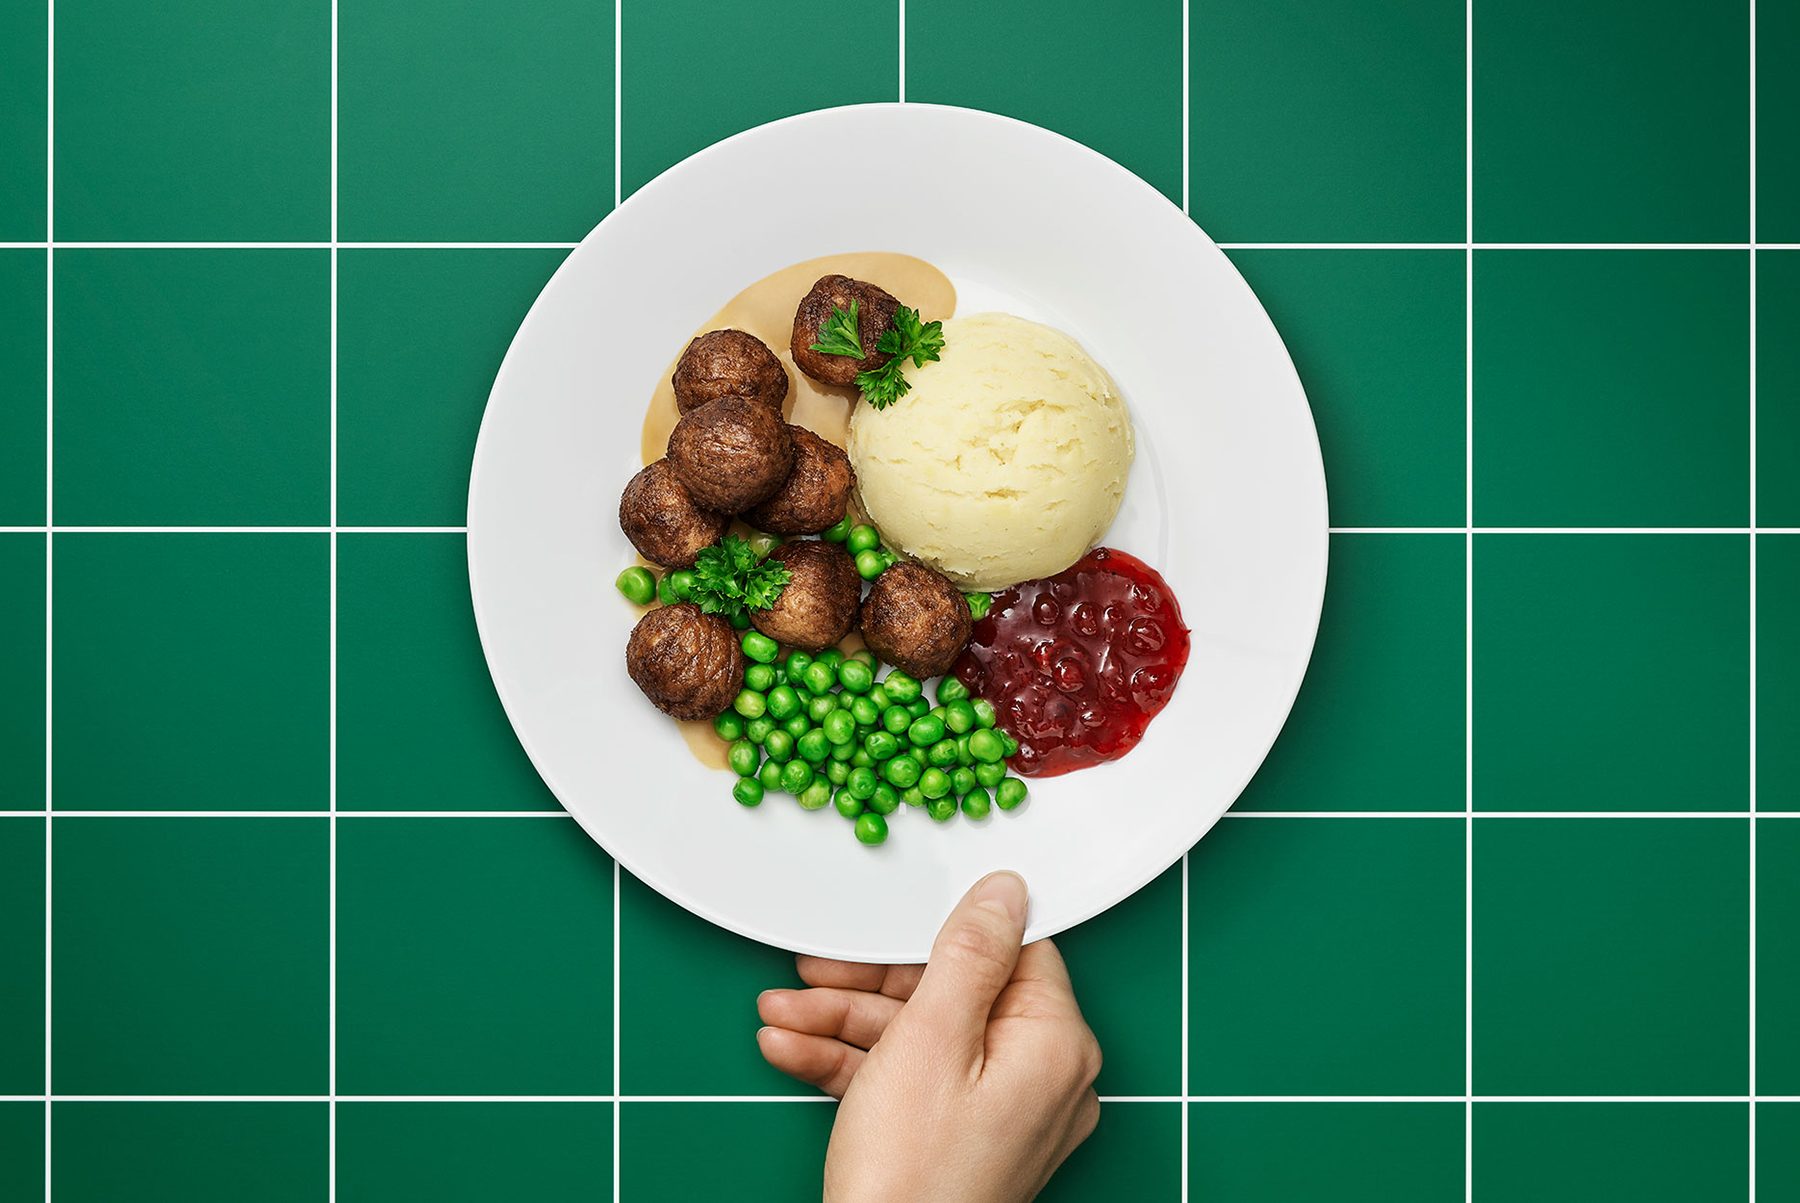 Ikea plant balls served on a plate